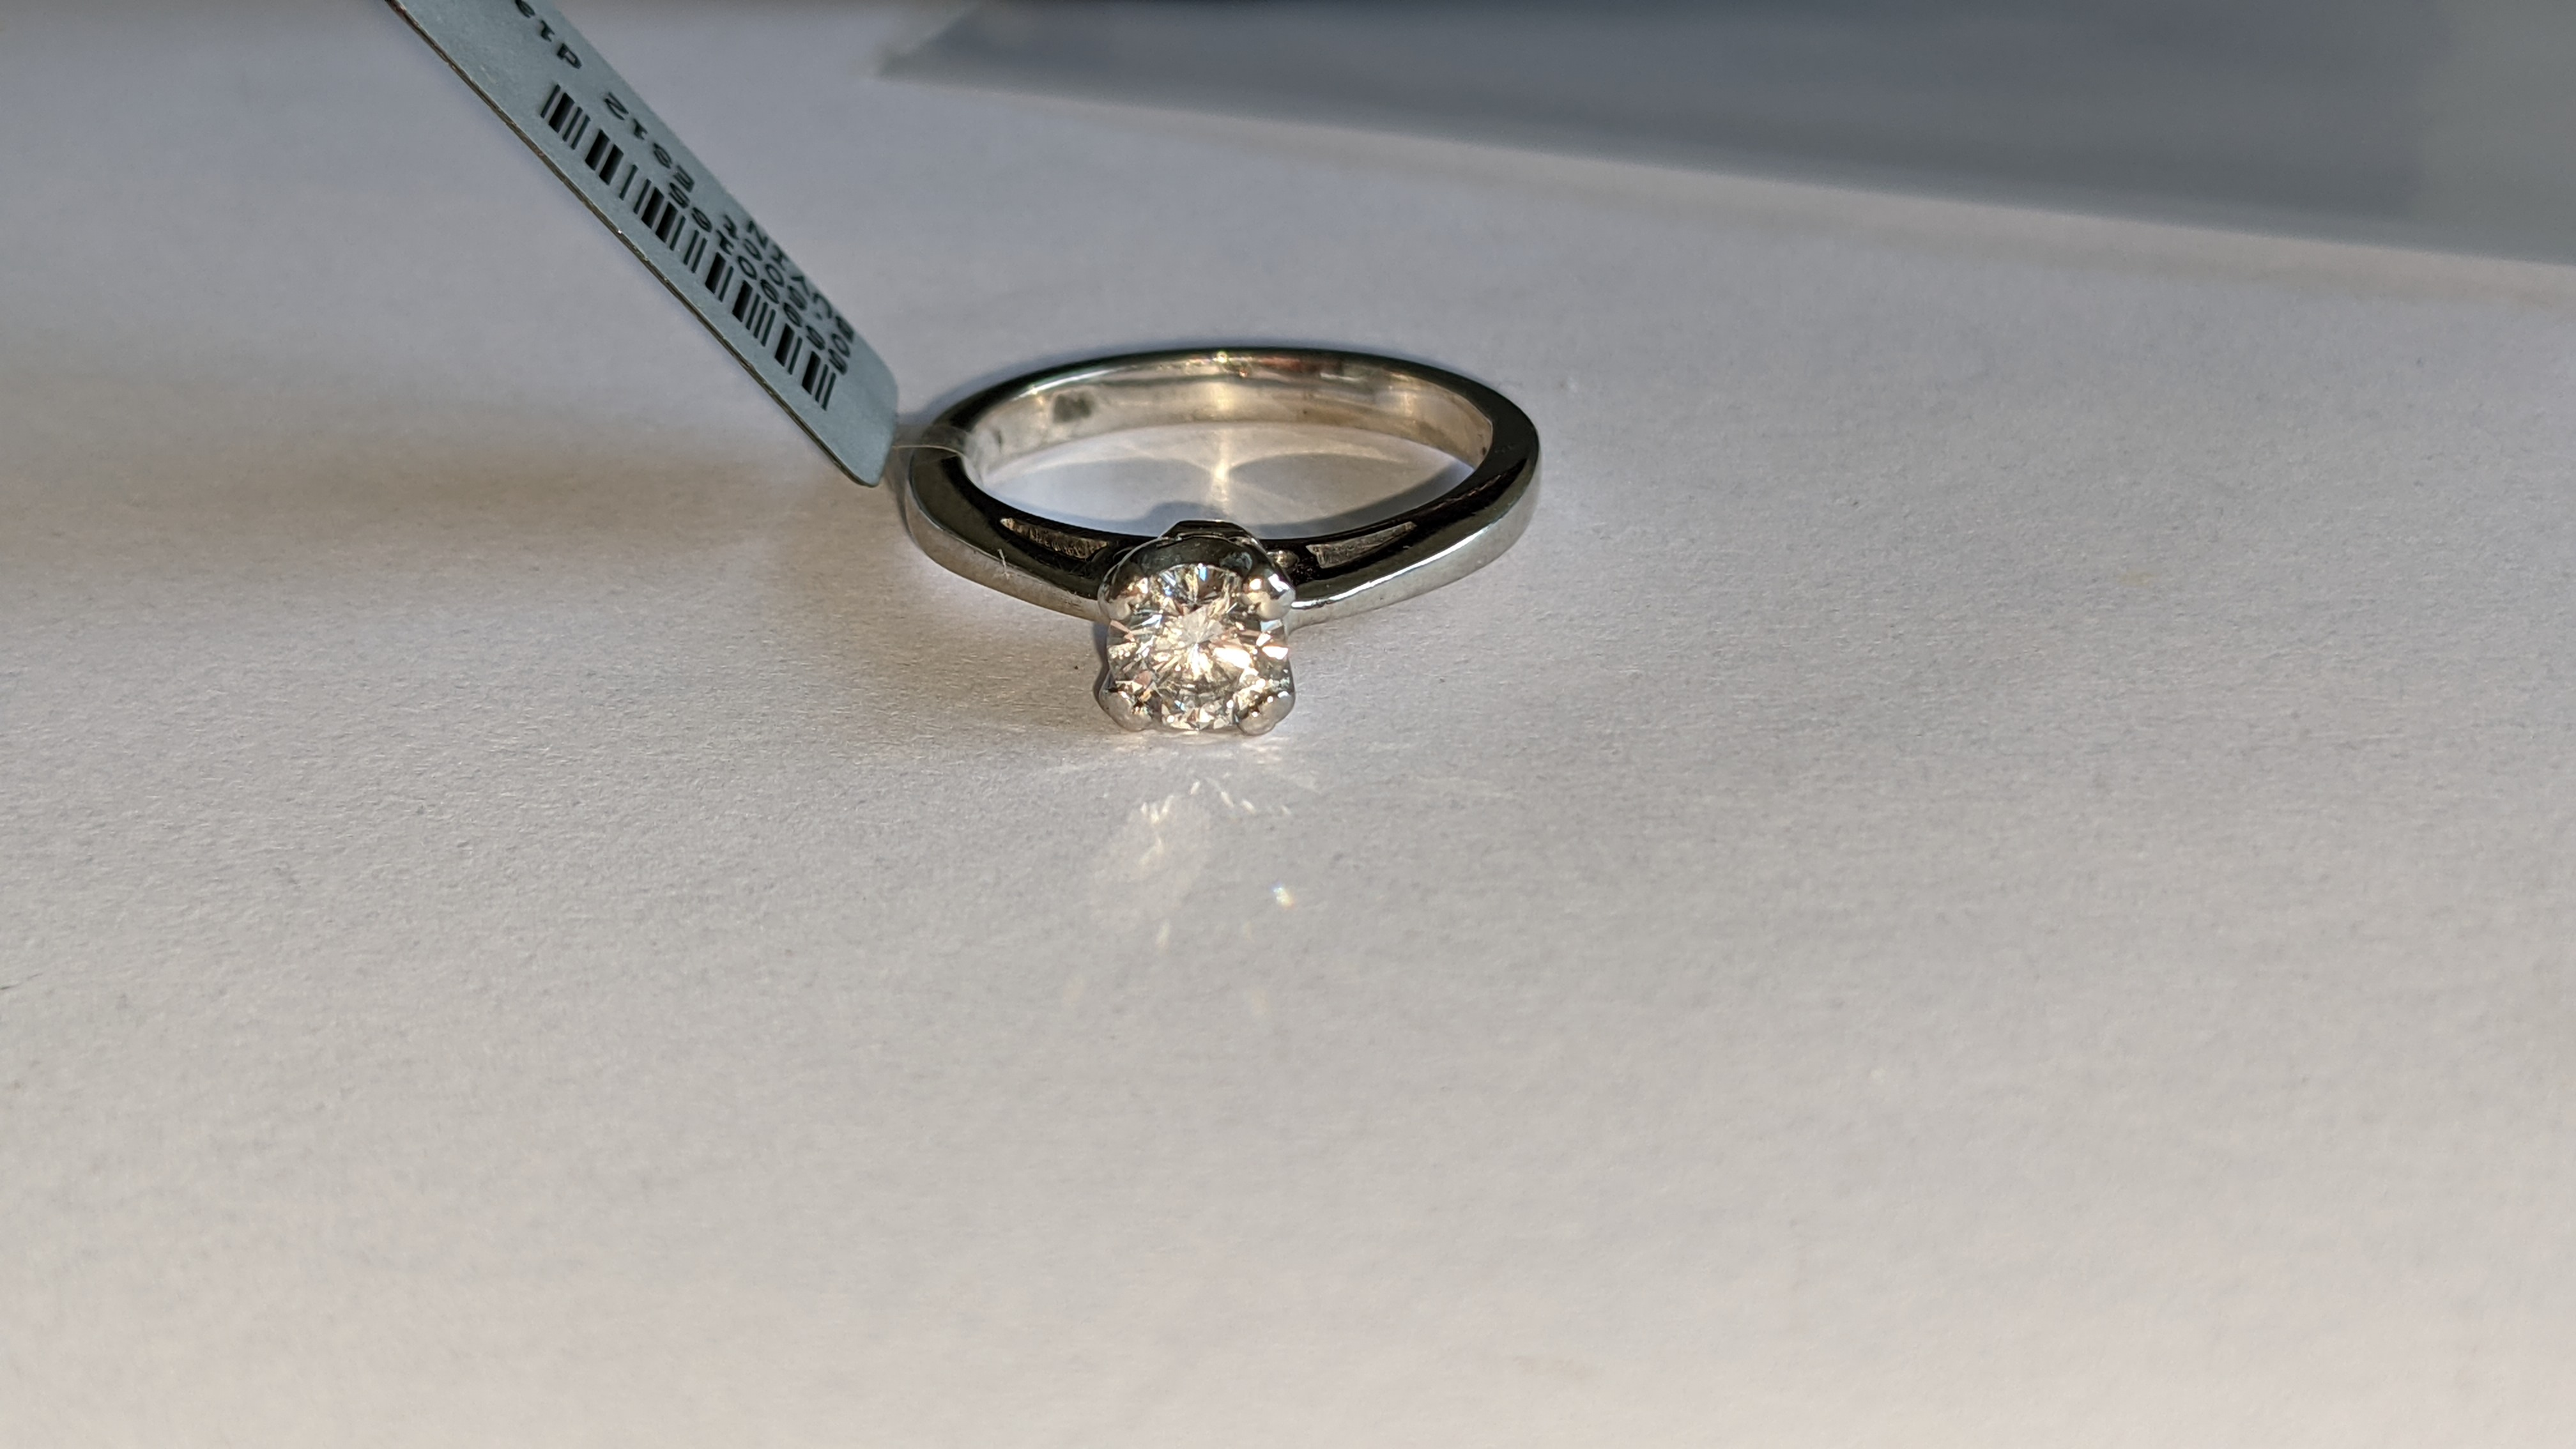 Platinum 950 ring with 0.50ct diamond. Includes diamond report/certification indicating the central - Image 7 of 25